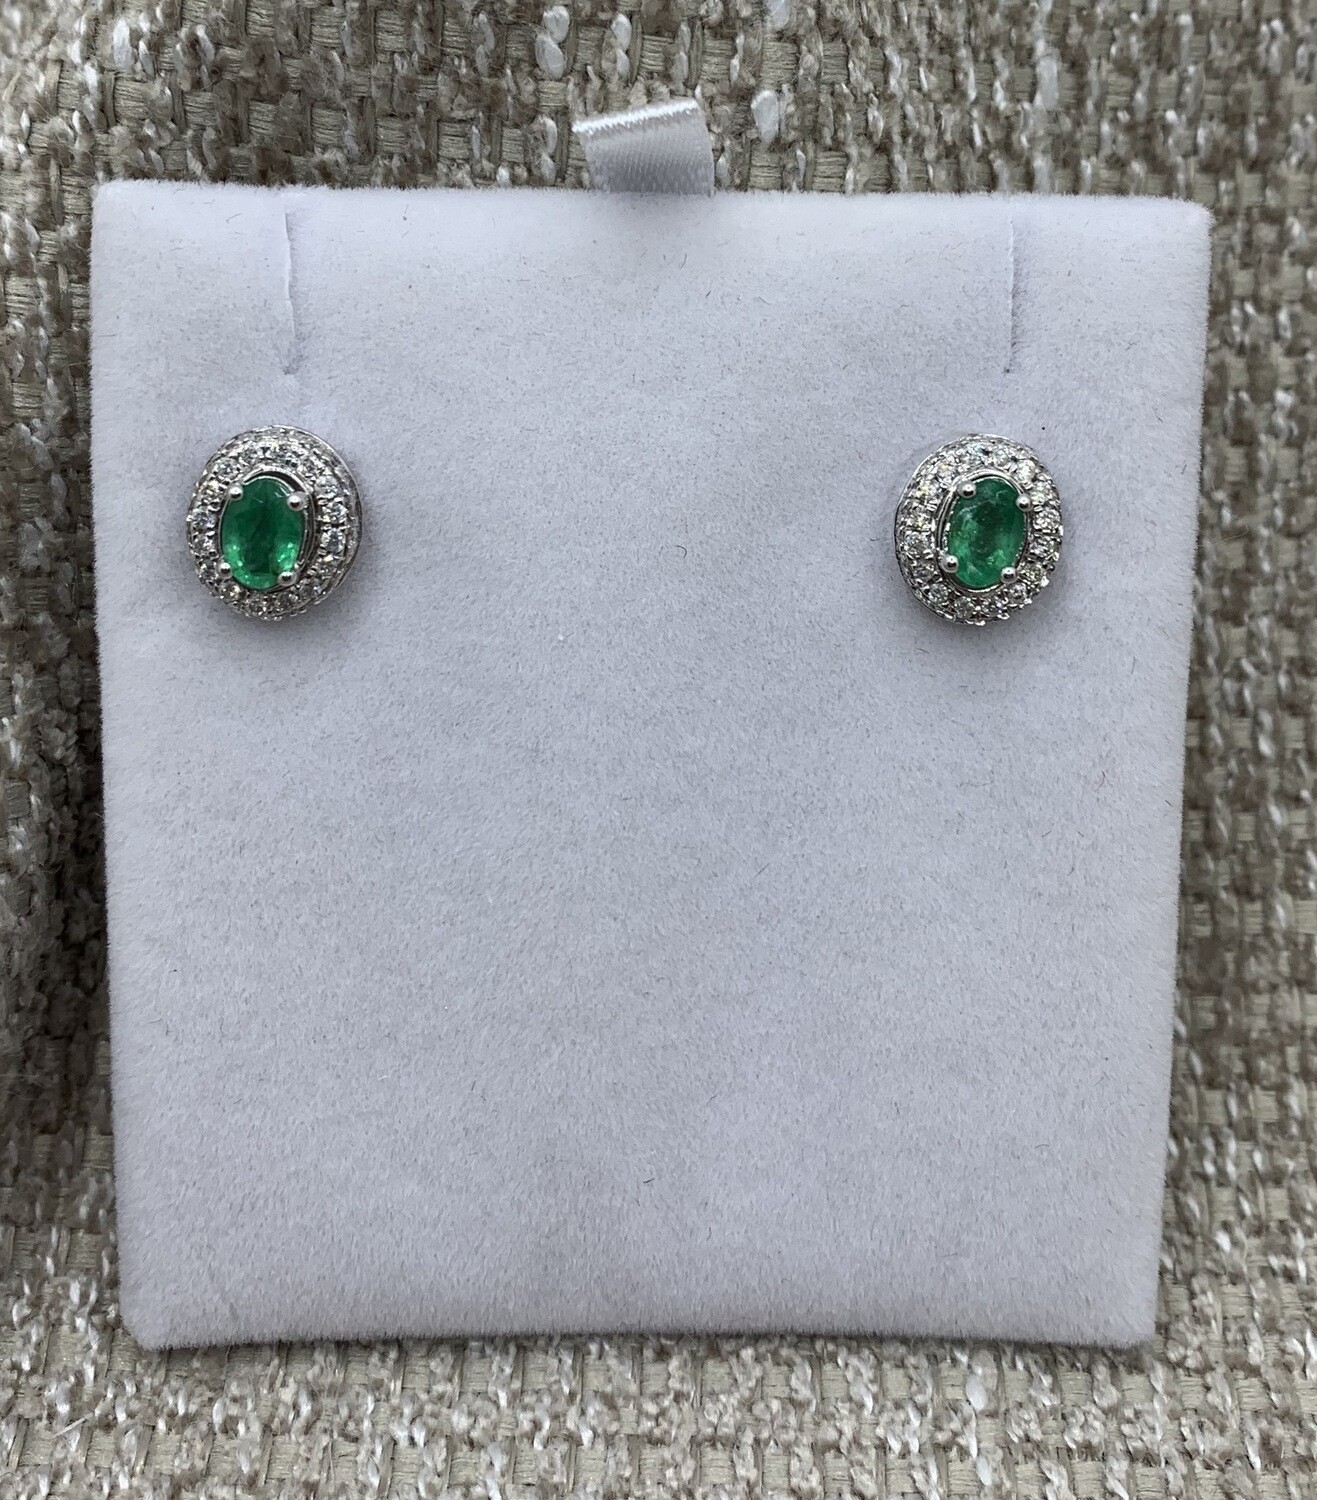 Oval Emerald With Diamond Halo Post Earrings